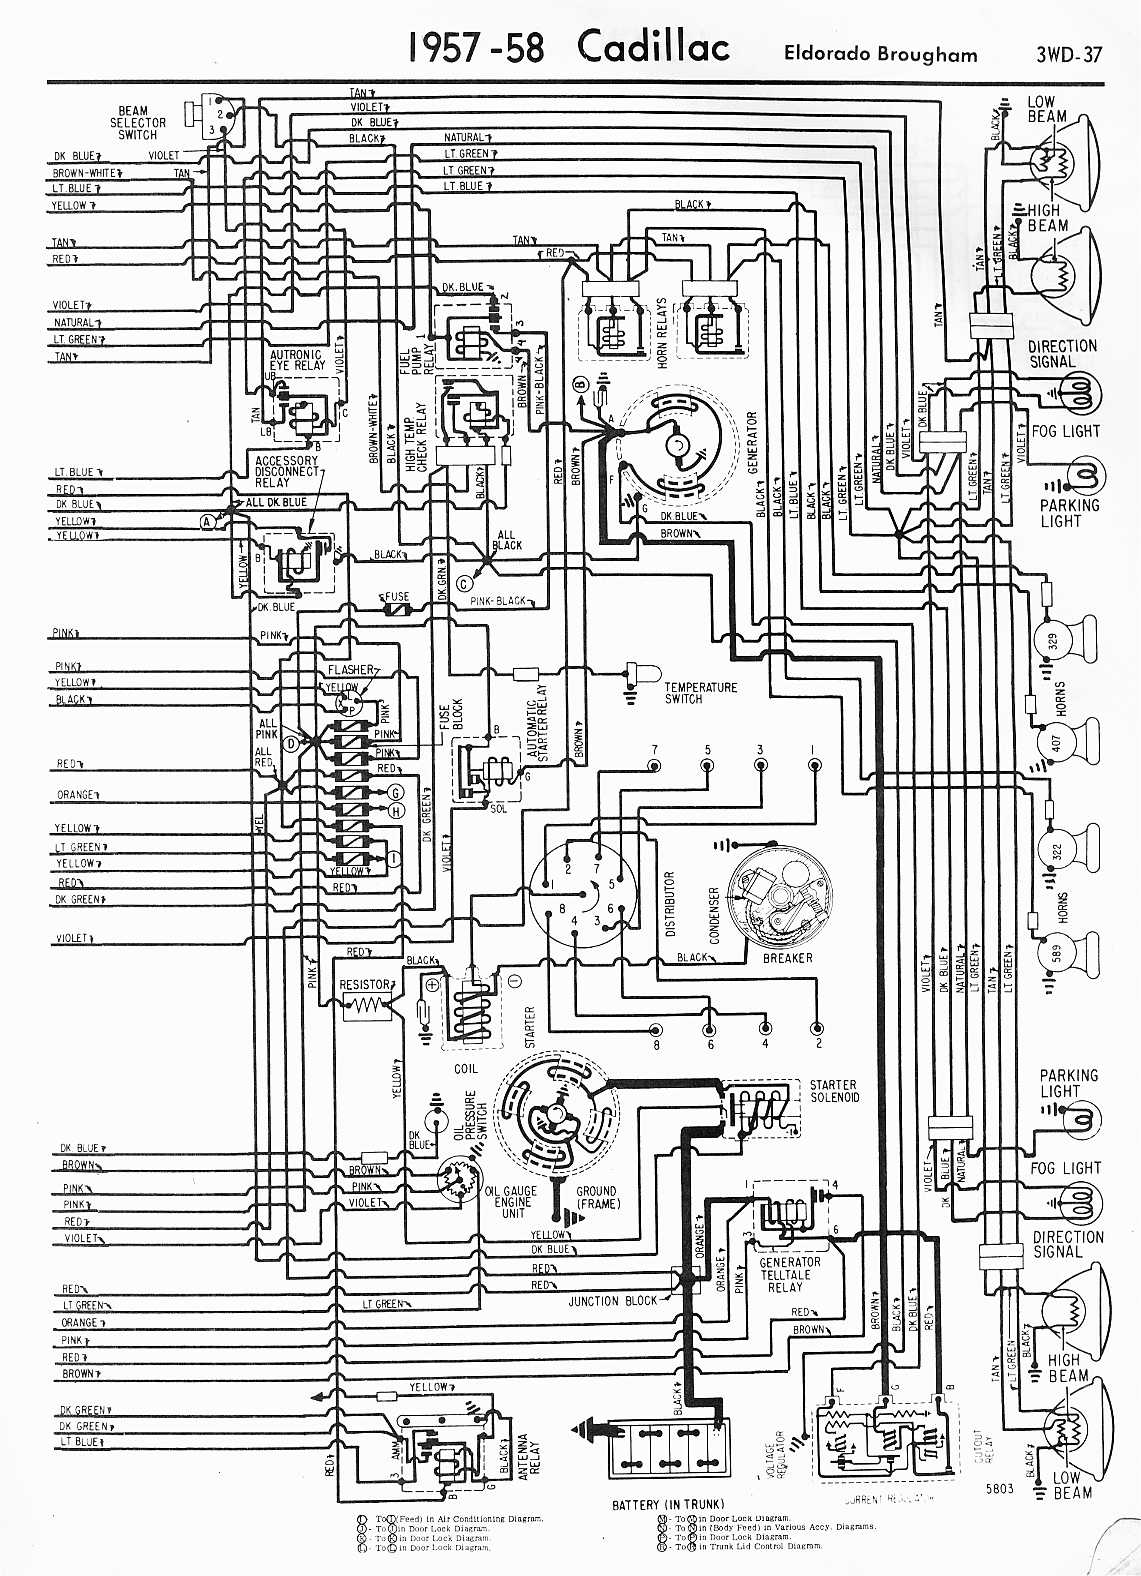 1970 Cadillac Alternator Wiring Diagram - House Wiring Diagram Symbols •